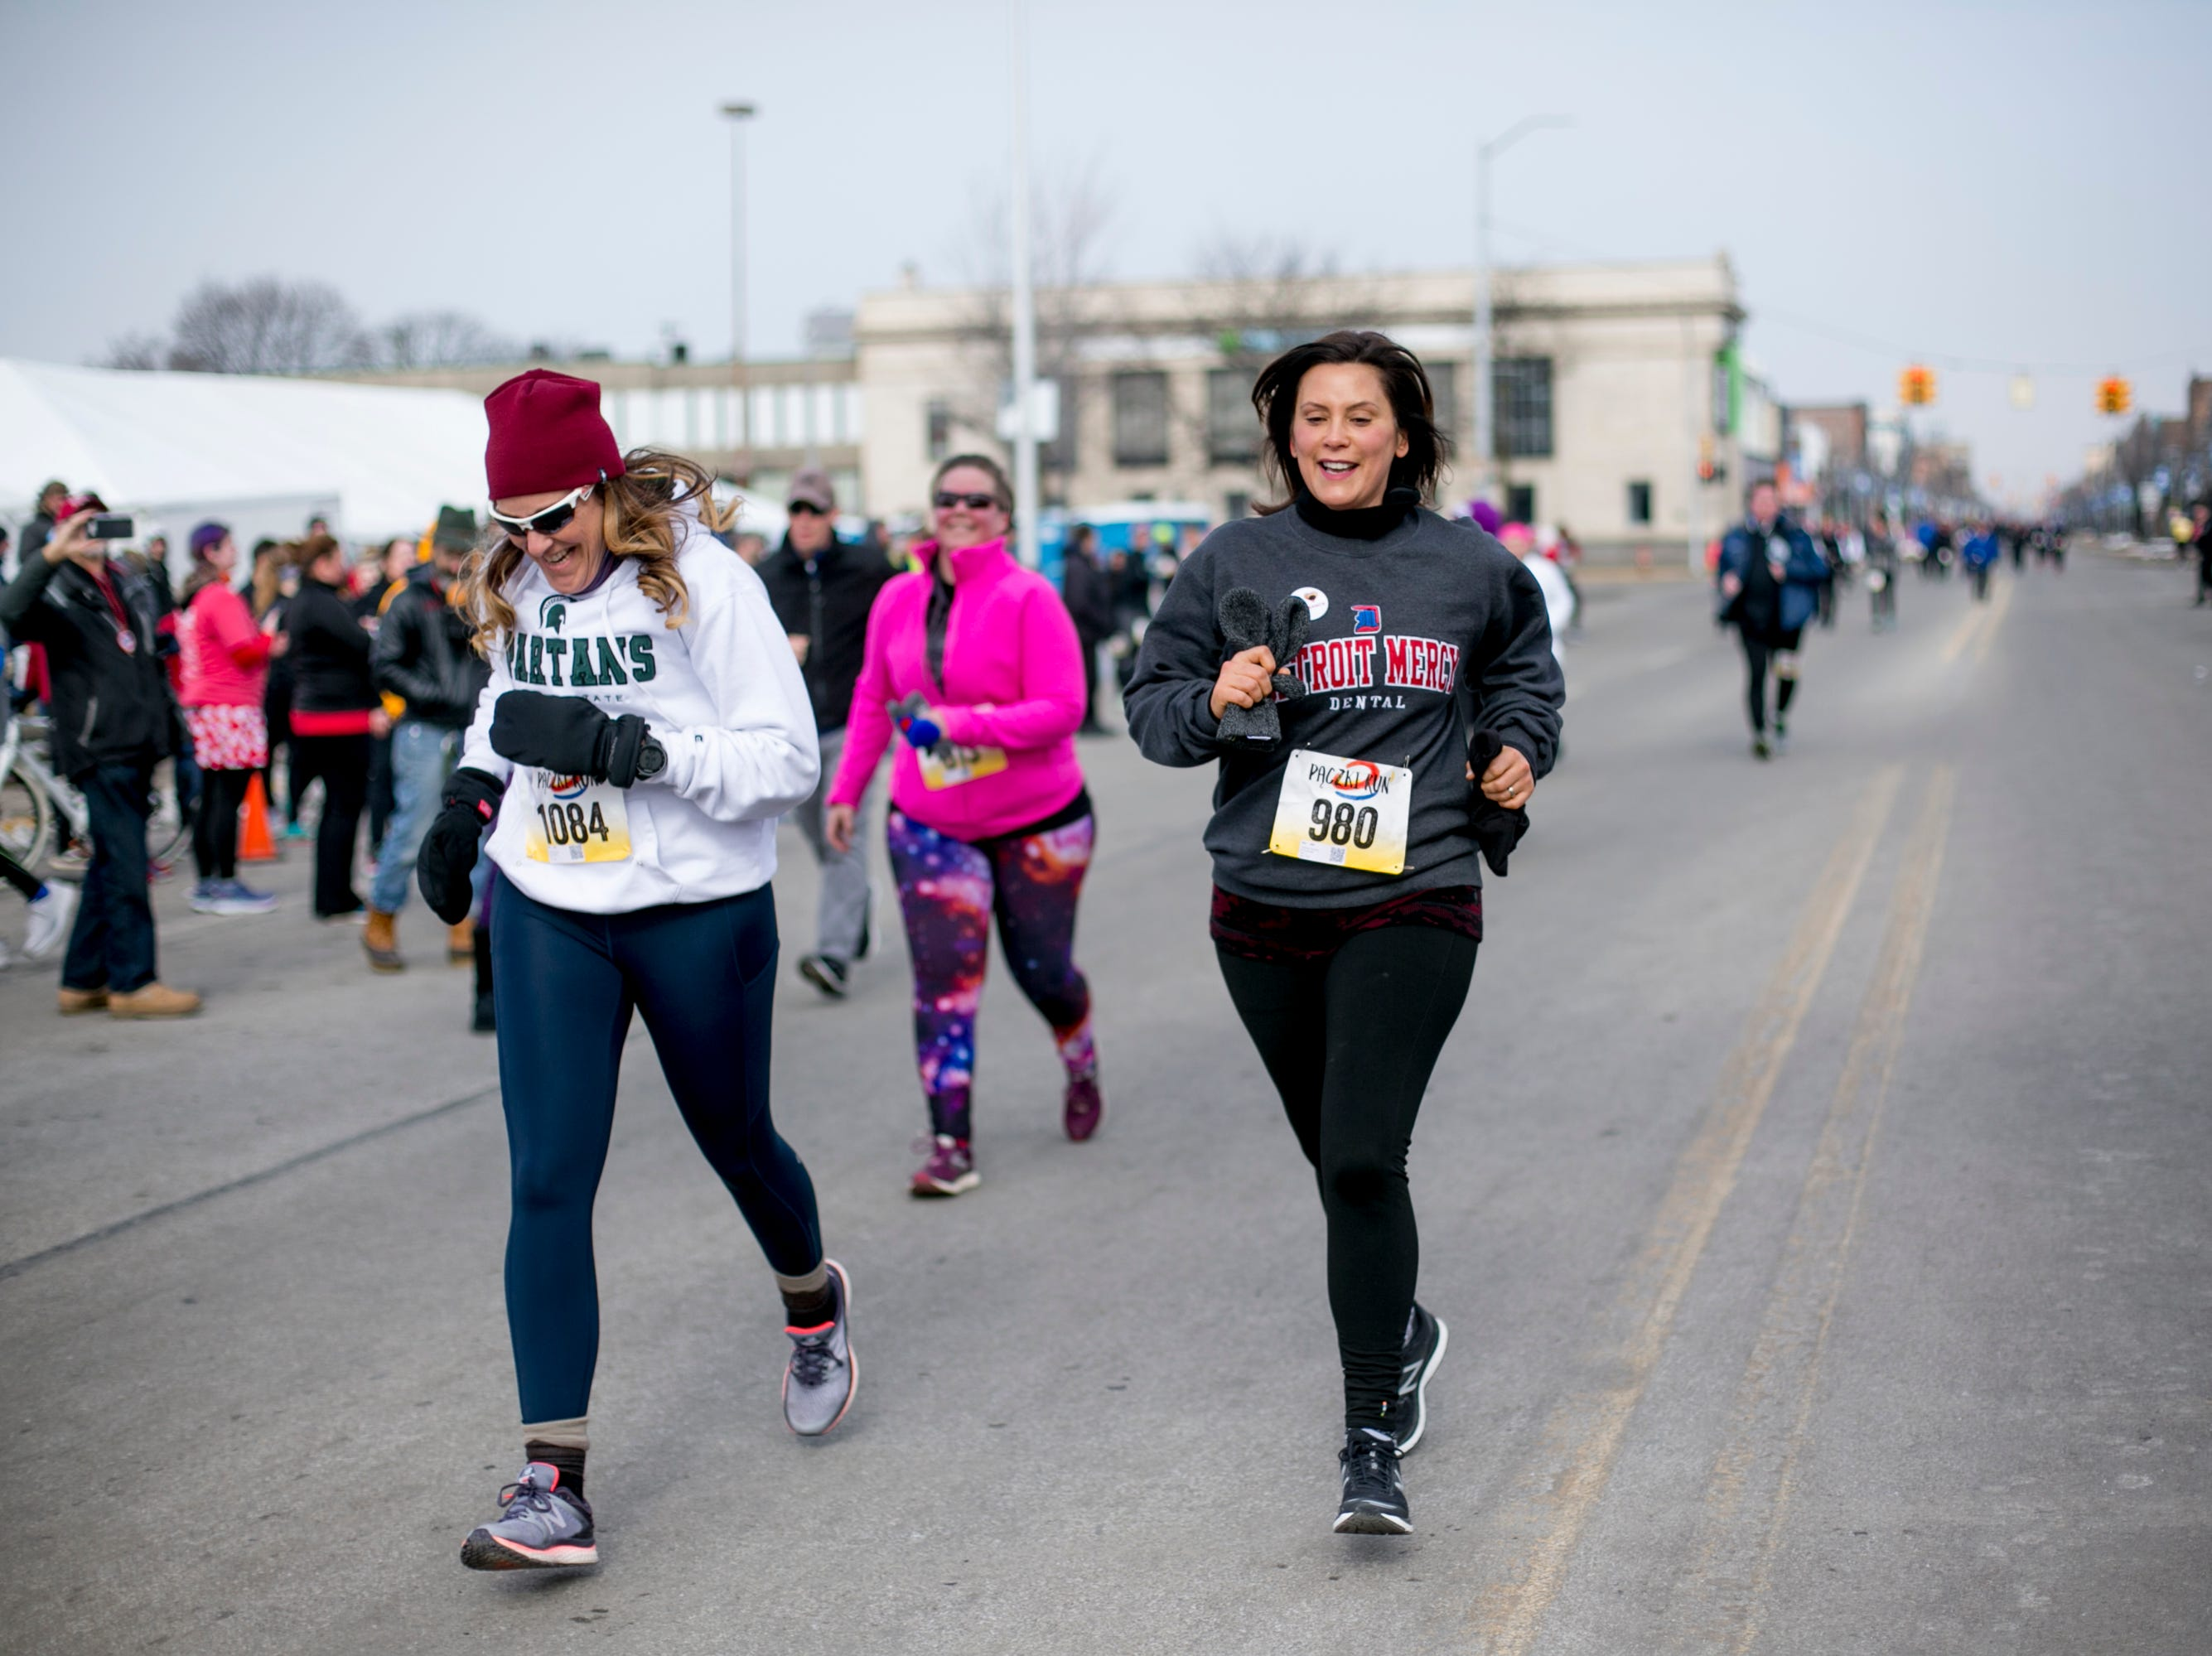 Gov. Gretchen Whitmer finishes  the 7th annual Tour-de-Troit Paczki Run in Hamtramck on March 2, 2019.